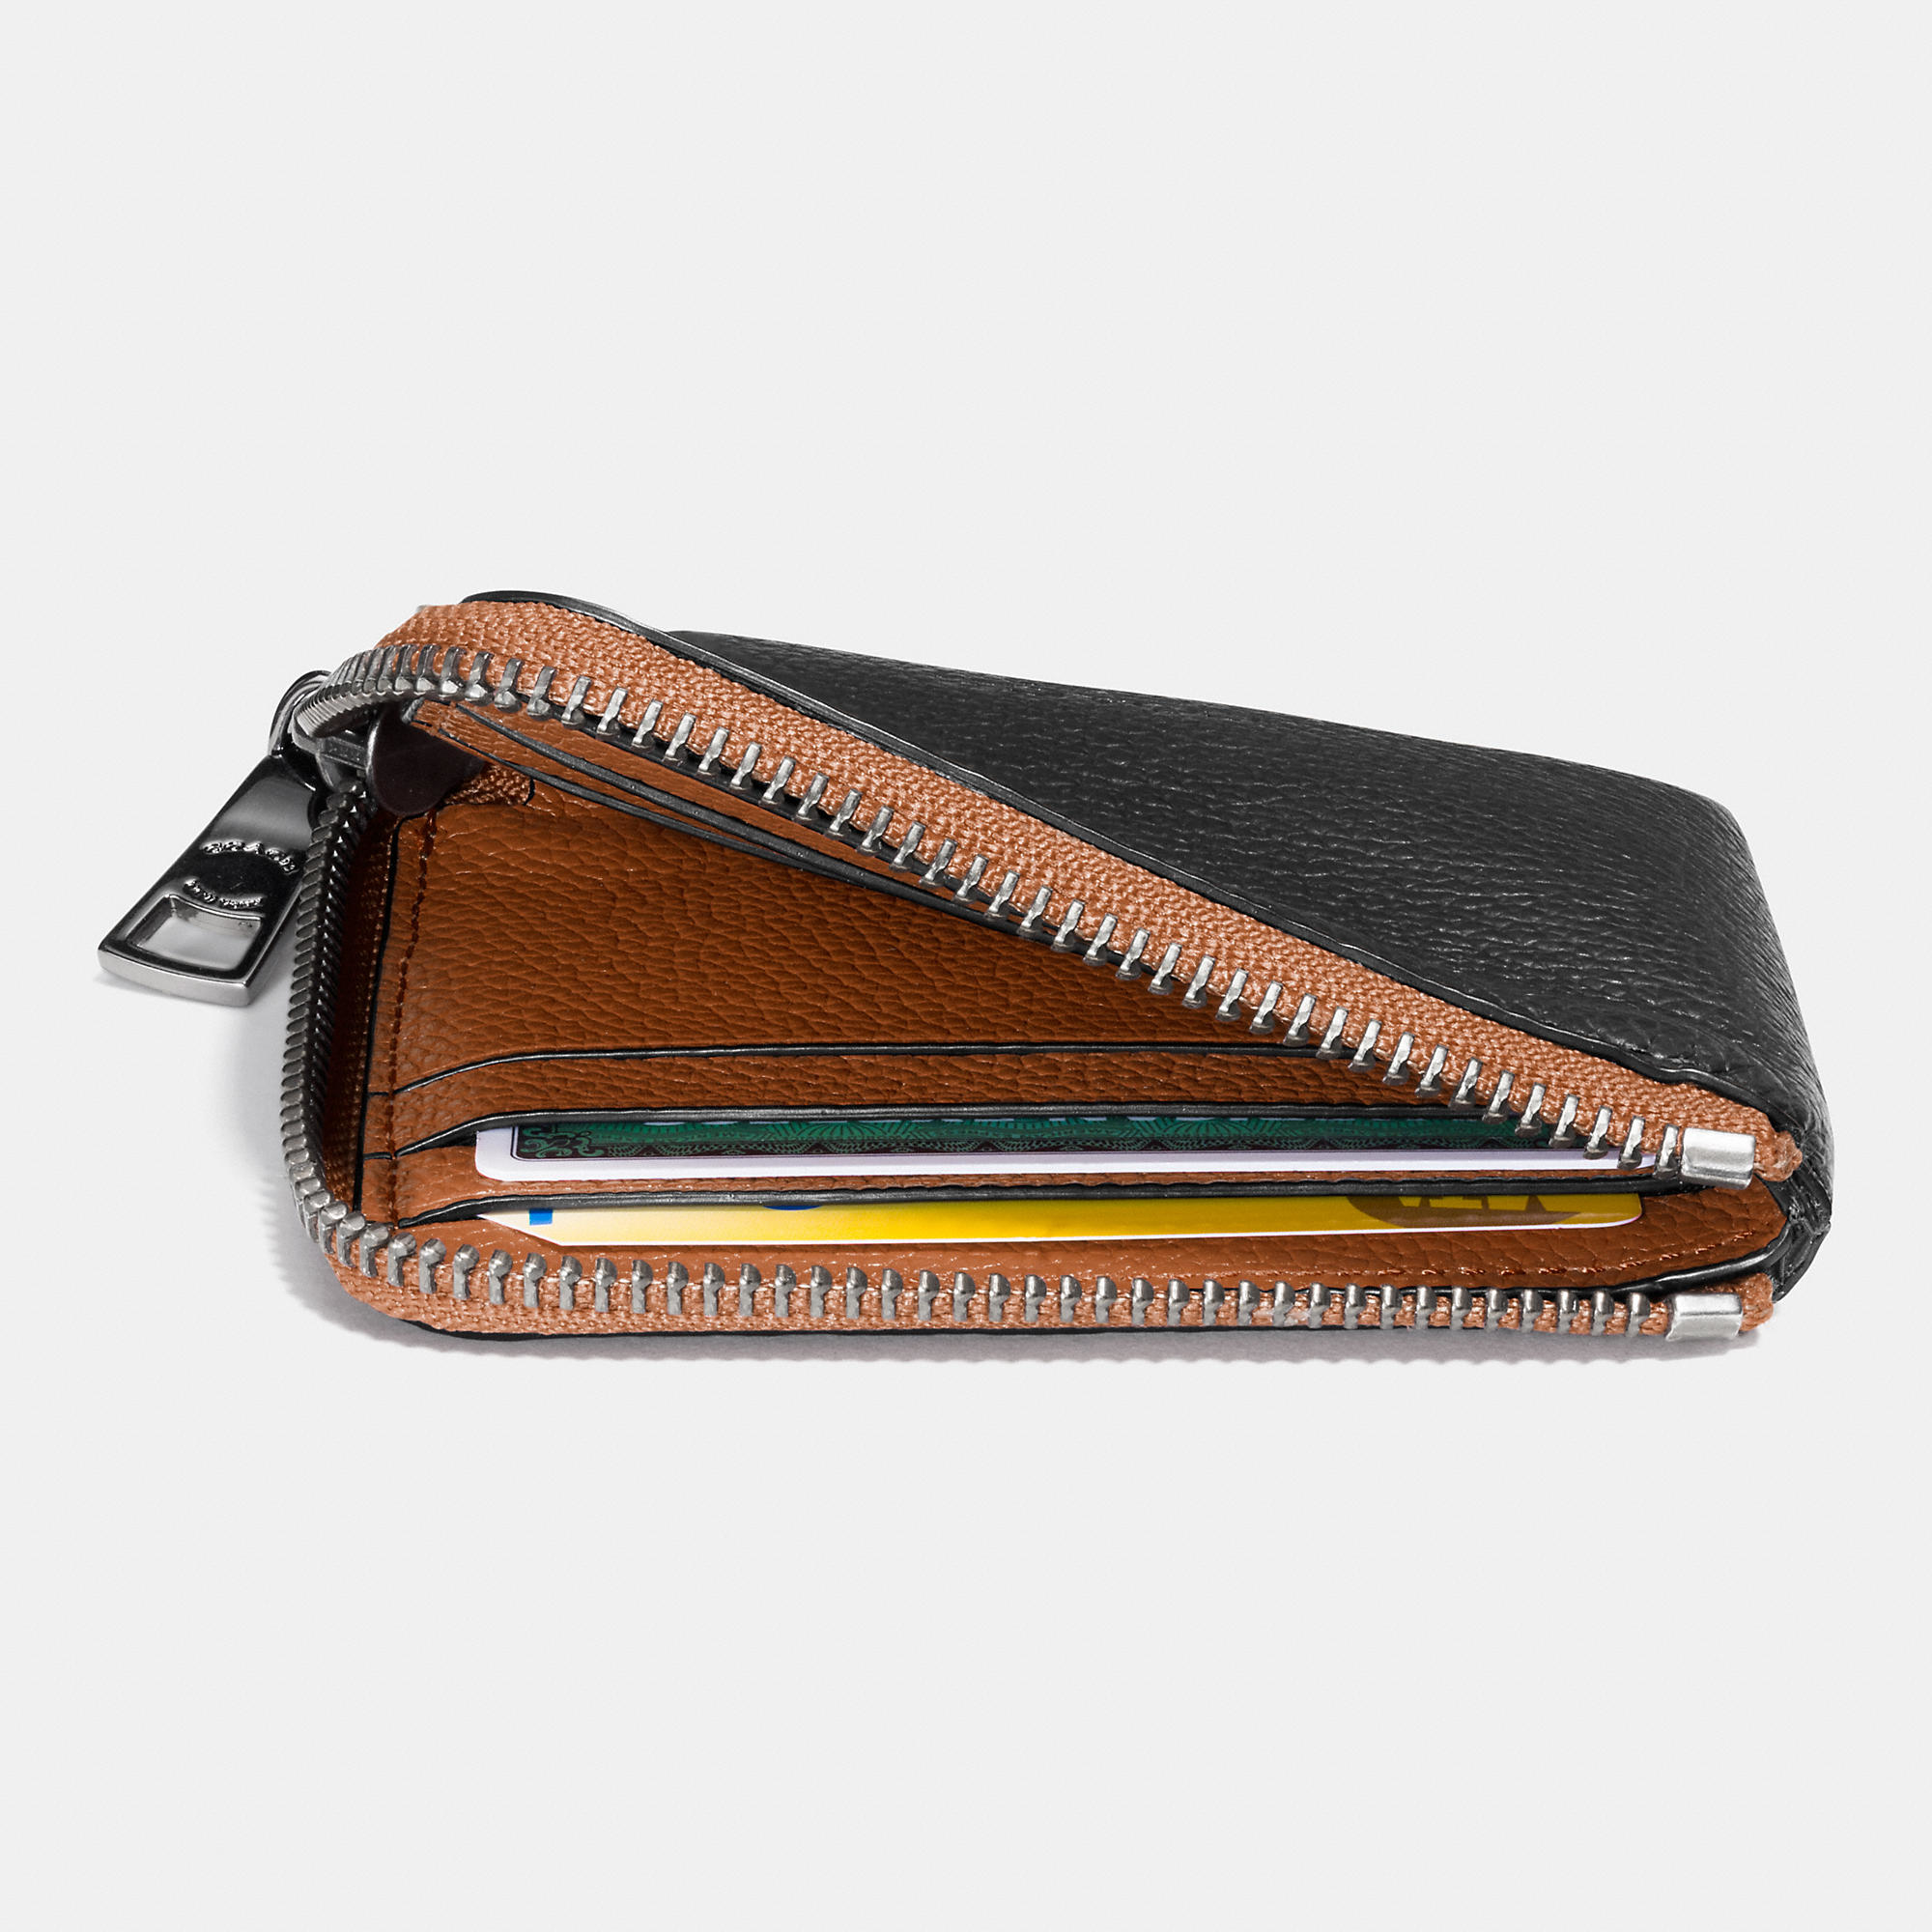 6dc13f0b56bb8 Mens Zipped Wallet - Best Photo Wallet Justiceforkenny.Org